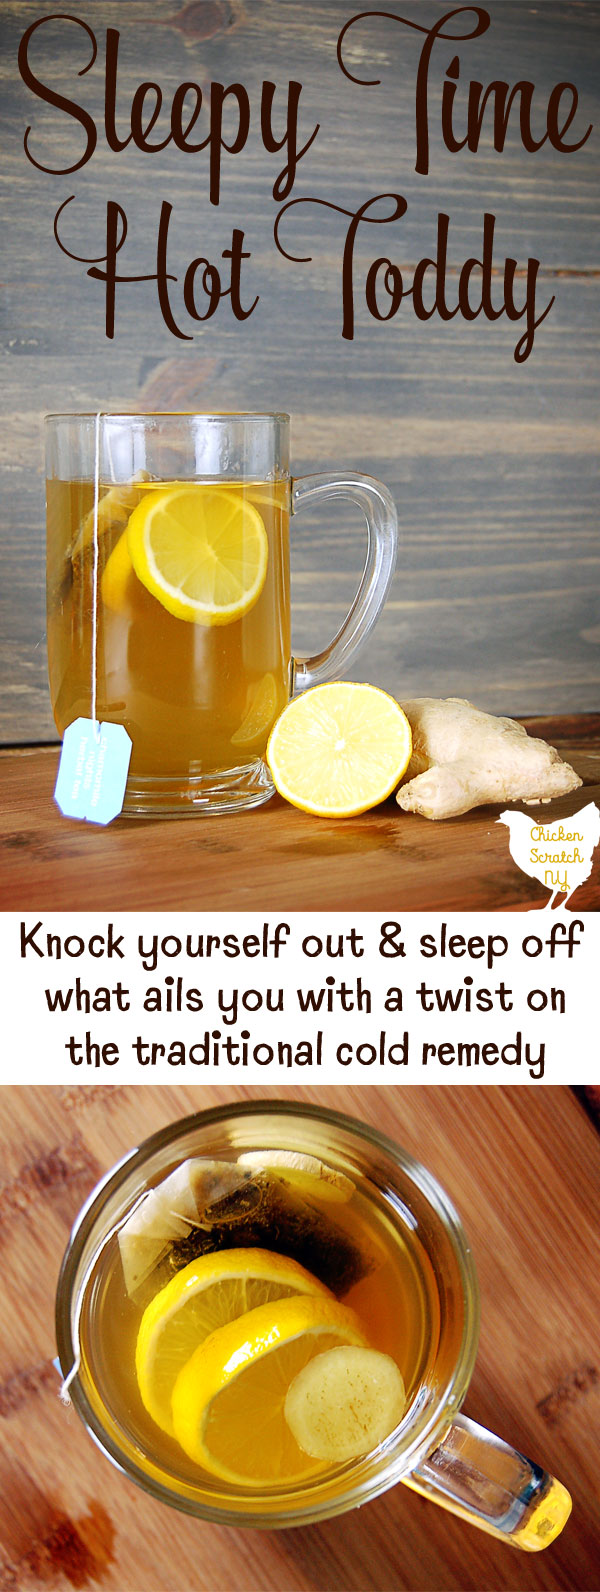 This twist on an old fashioned remedy may not cure your cold but it will certainly make it more bearable. Knock yourself out with a Sleepy Time Hot Toddy and sleep off what ails you